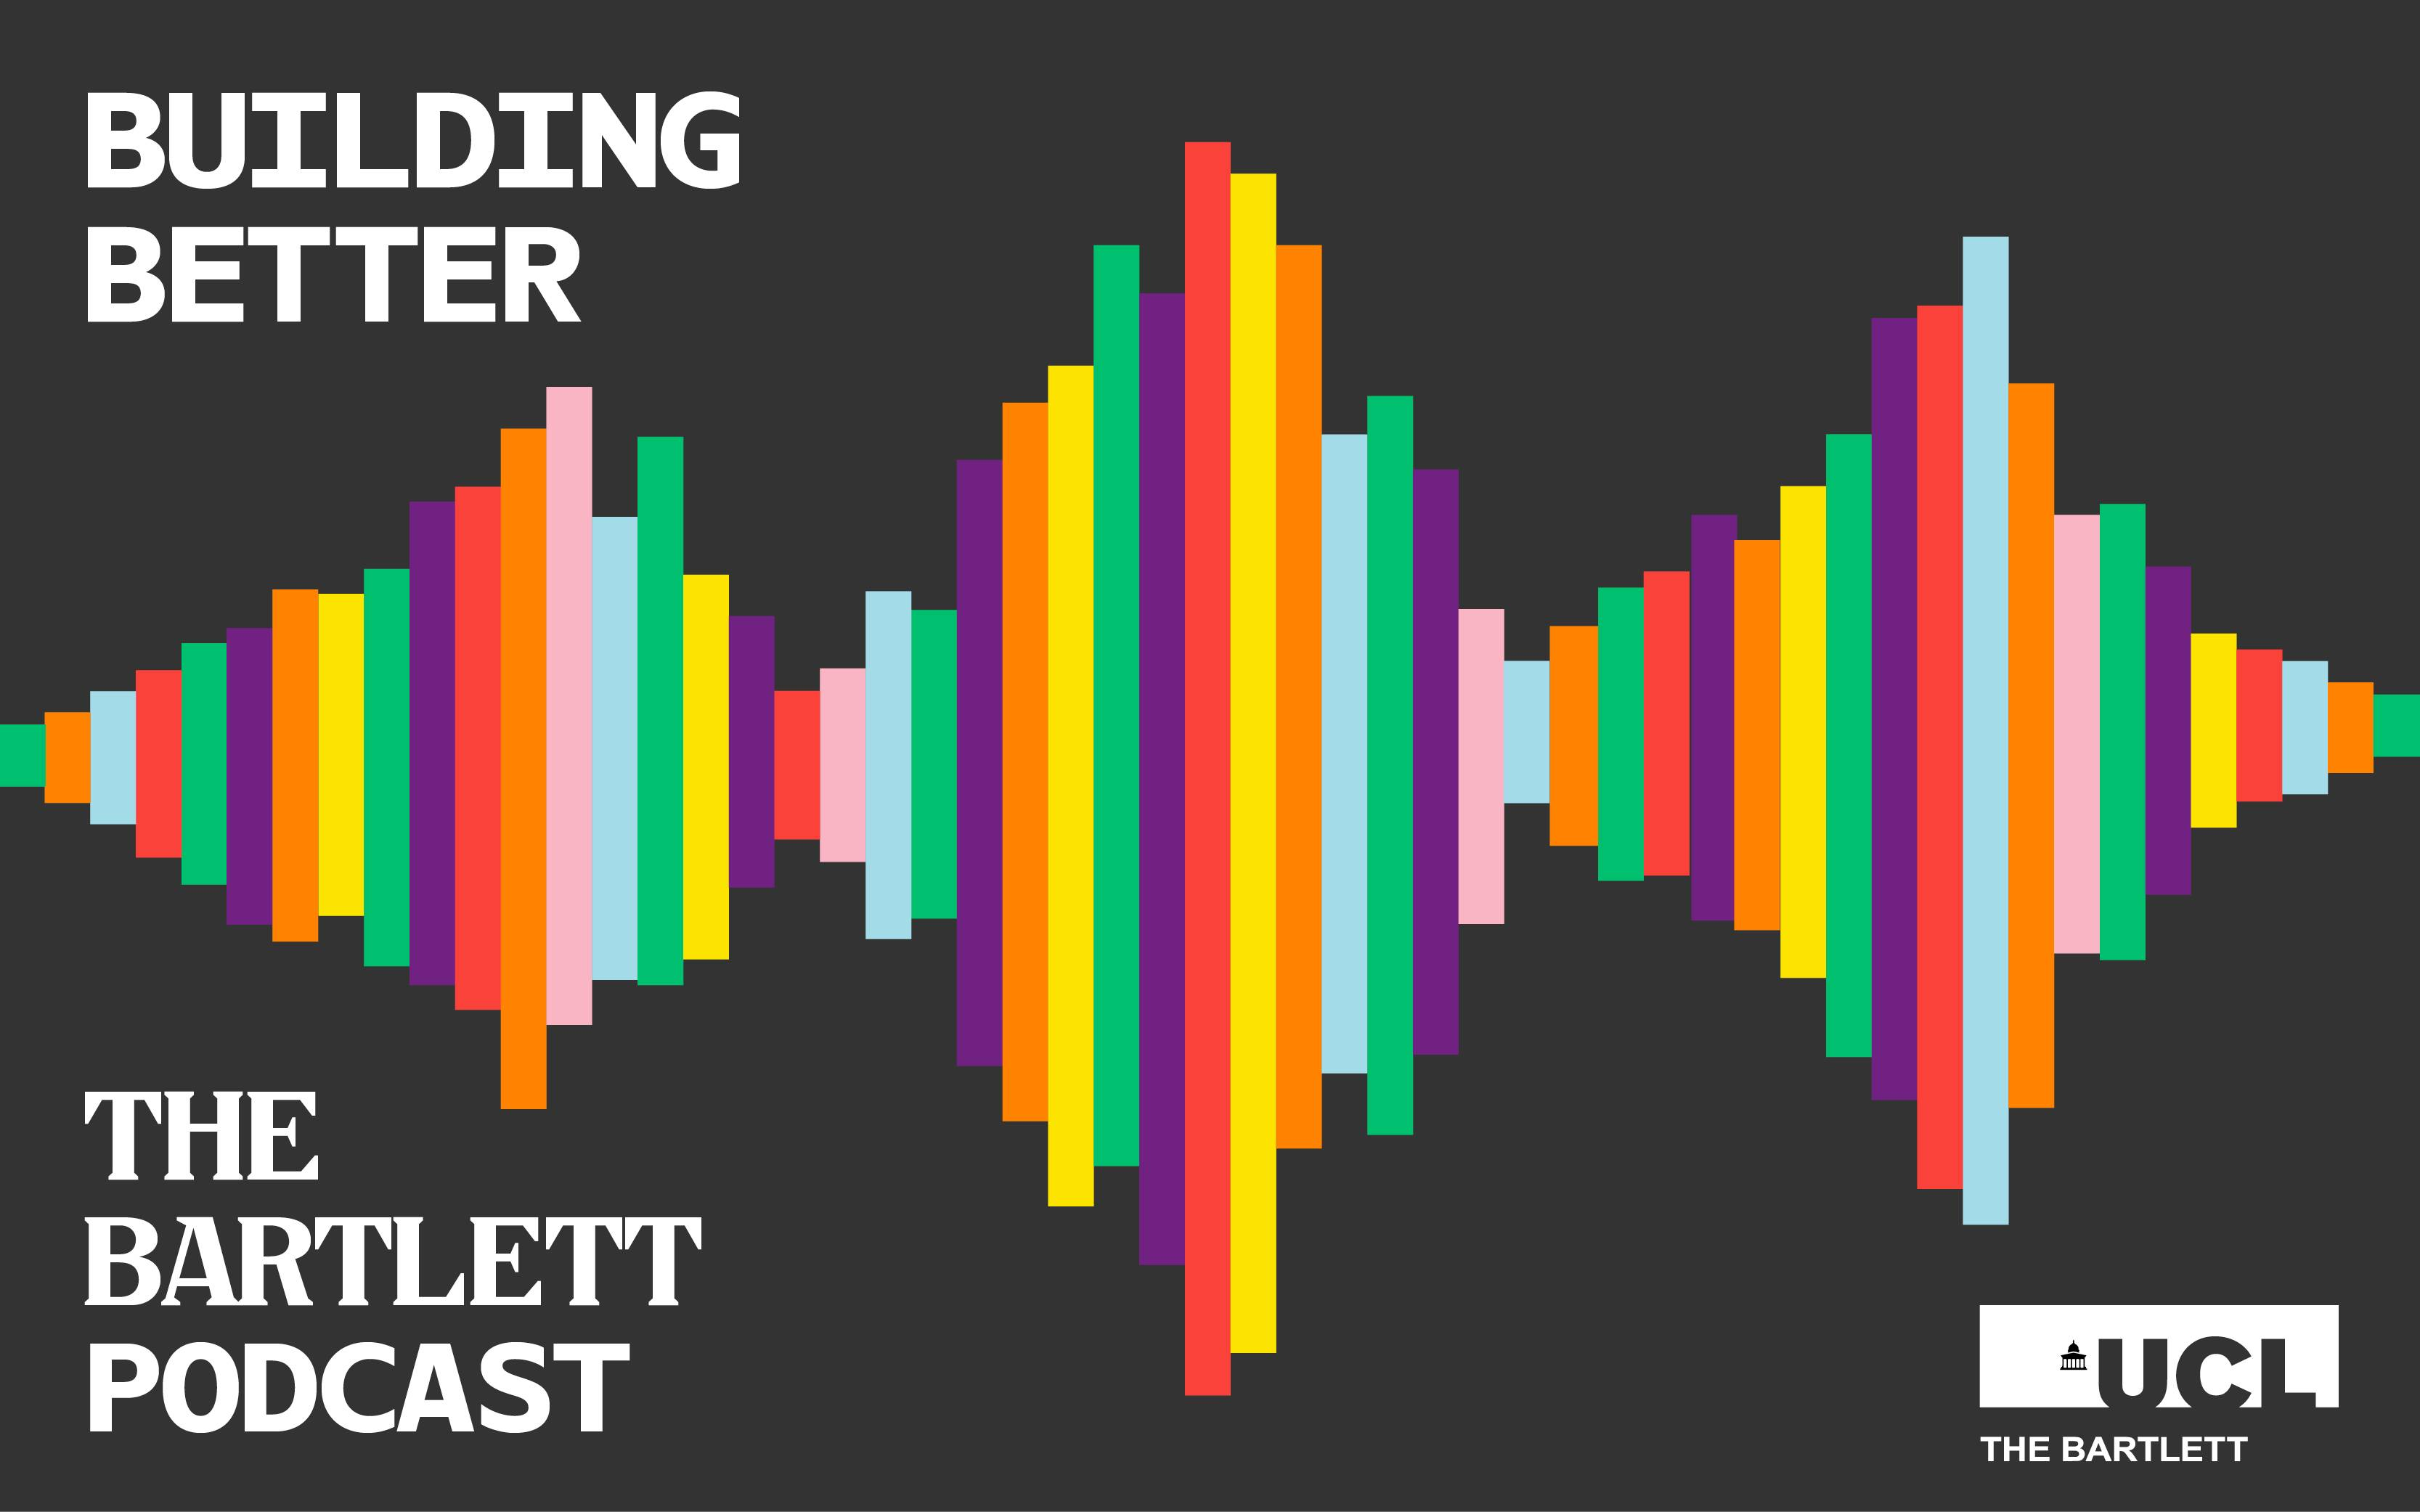 """Blocks of colours made into the shape of a sound wave with white text """"Building Better The Bartlett Podcast"""" on black background"""